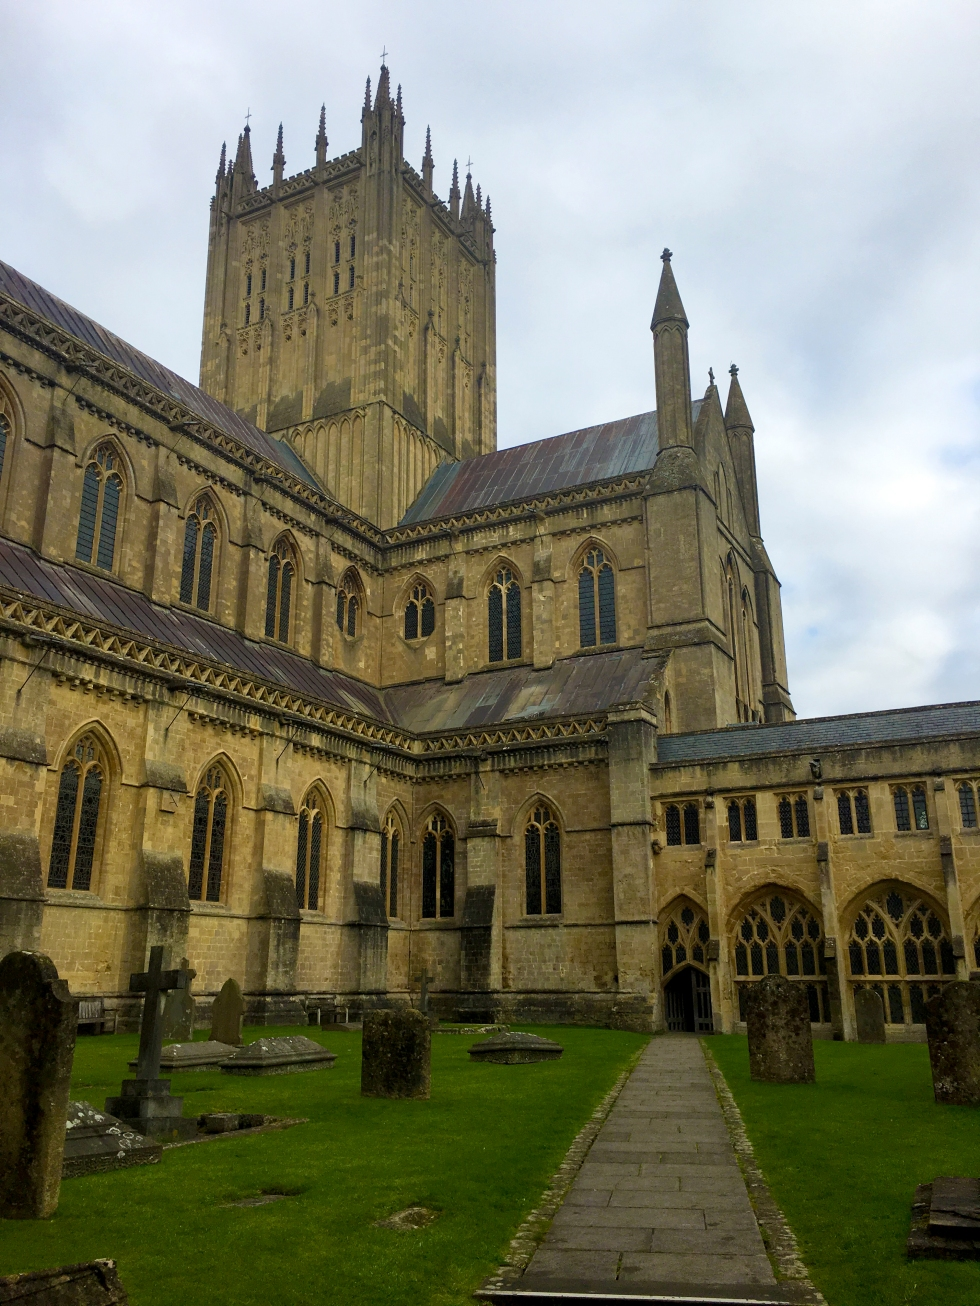 wells-cathedral-cloister-tower